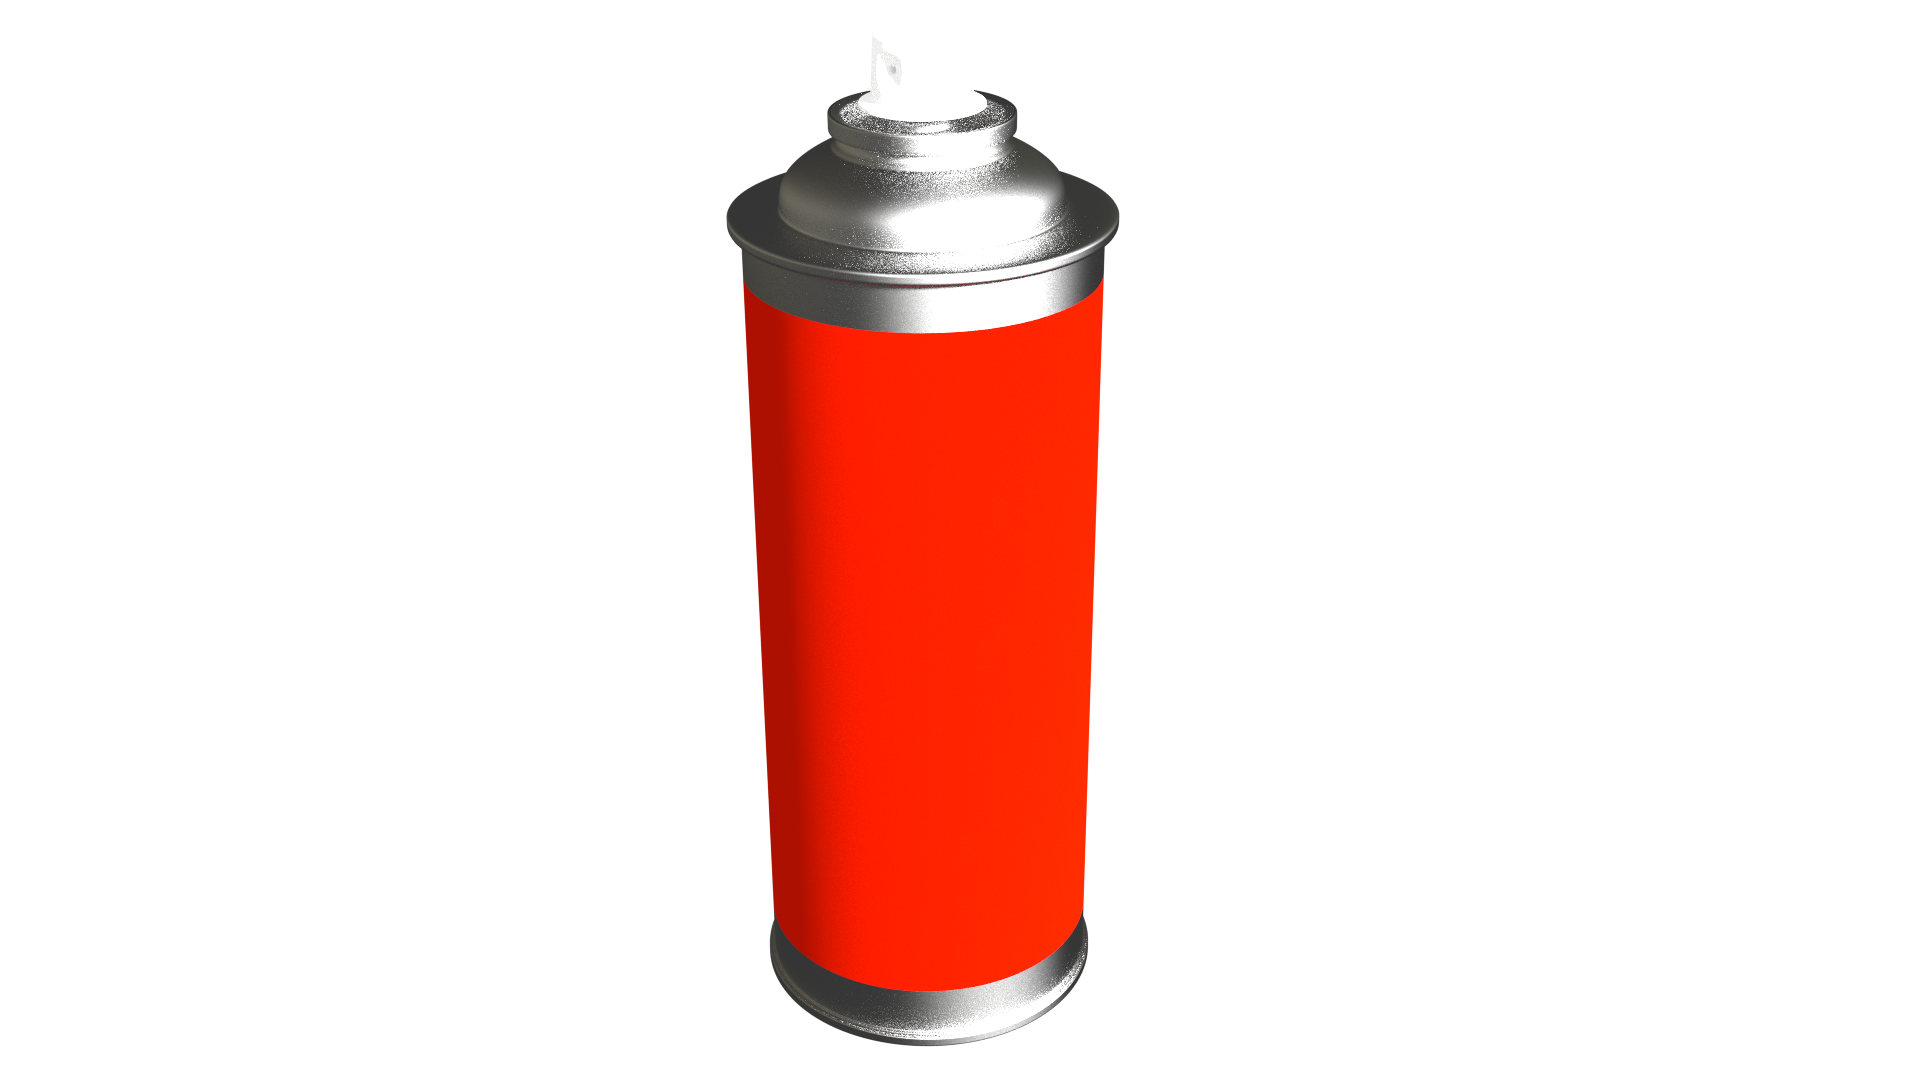 Spray paint can png. Red label kzbs spraycanredlabel